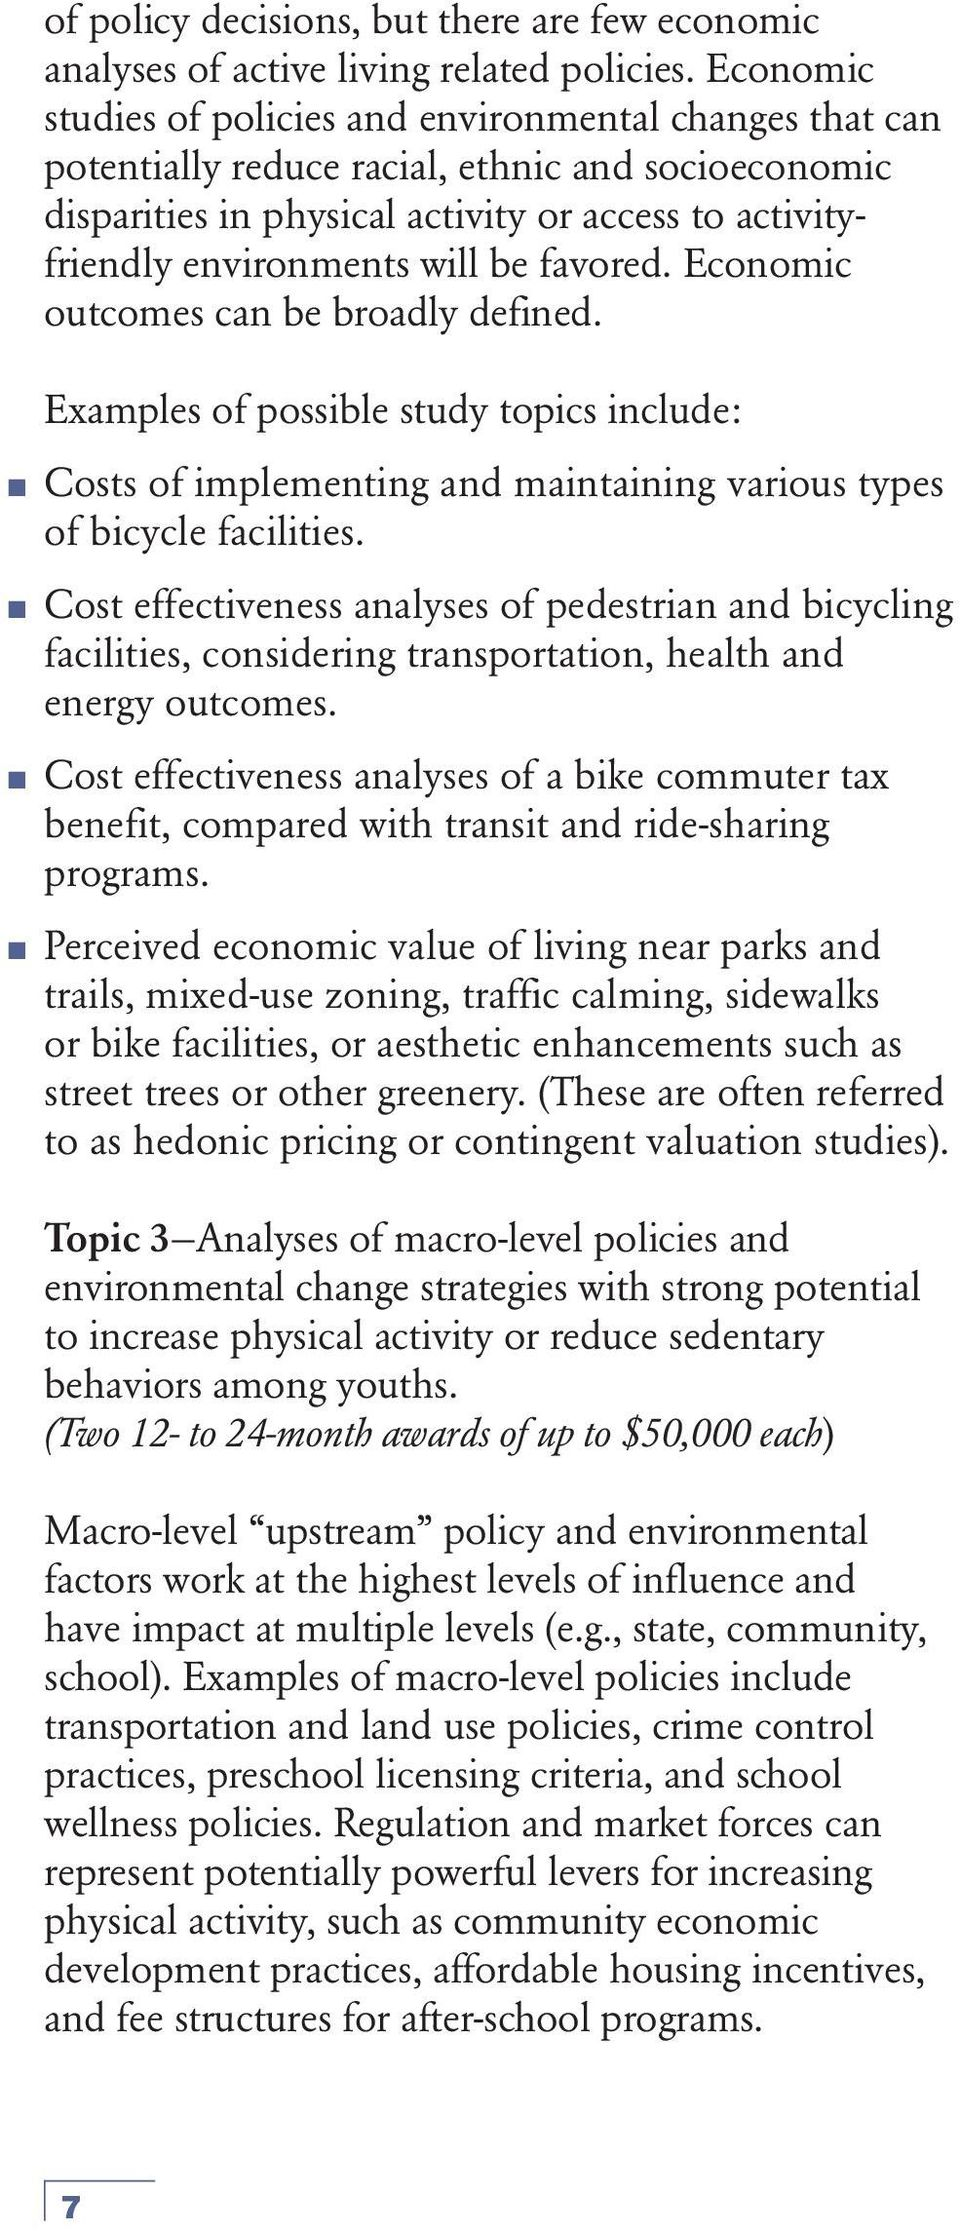 favored. Economic outcomes can be broadly defined. Examples of possible study topics include: Costs of implementing and maintaining various types of bicycle facilities.